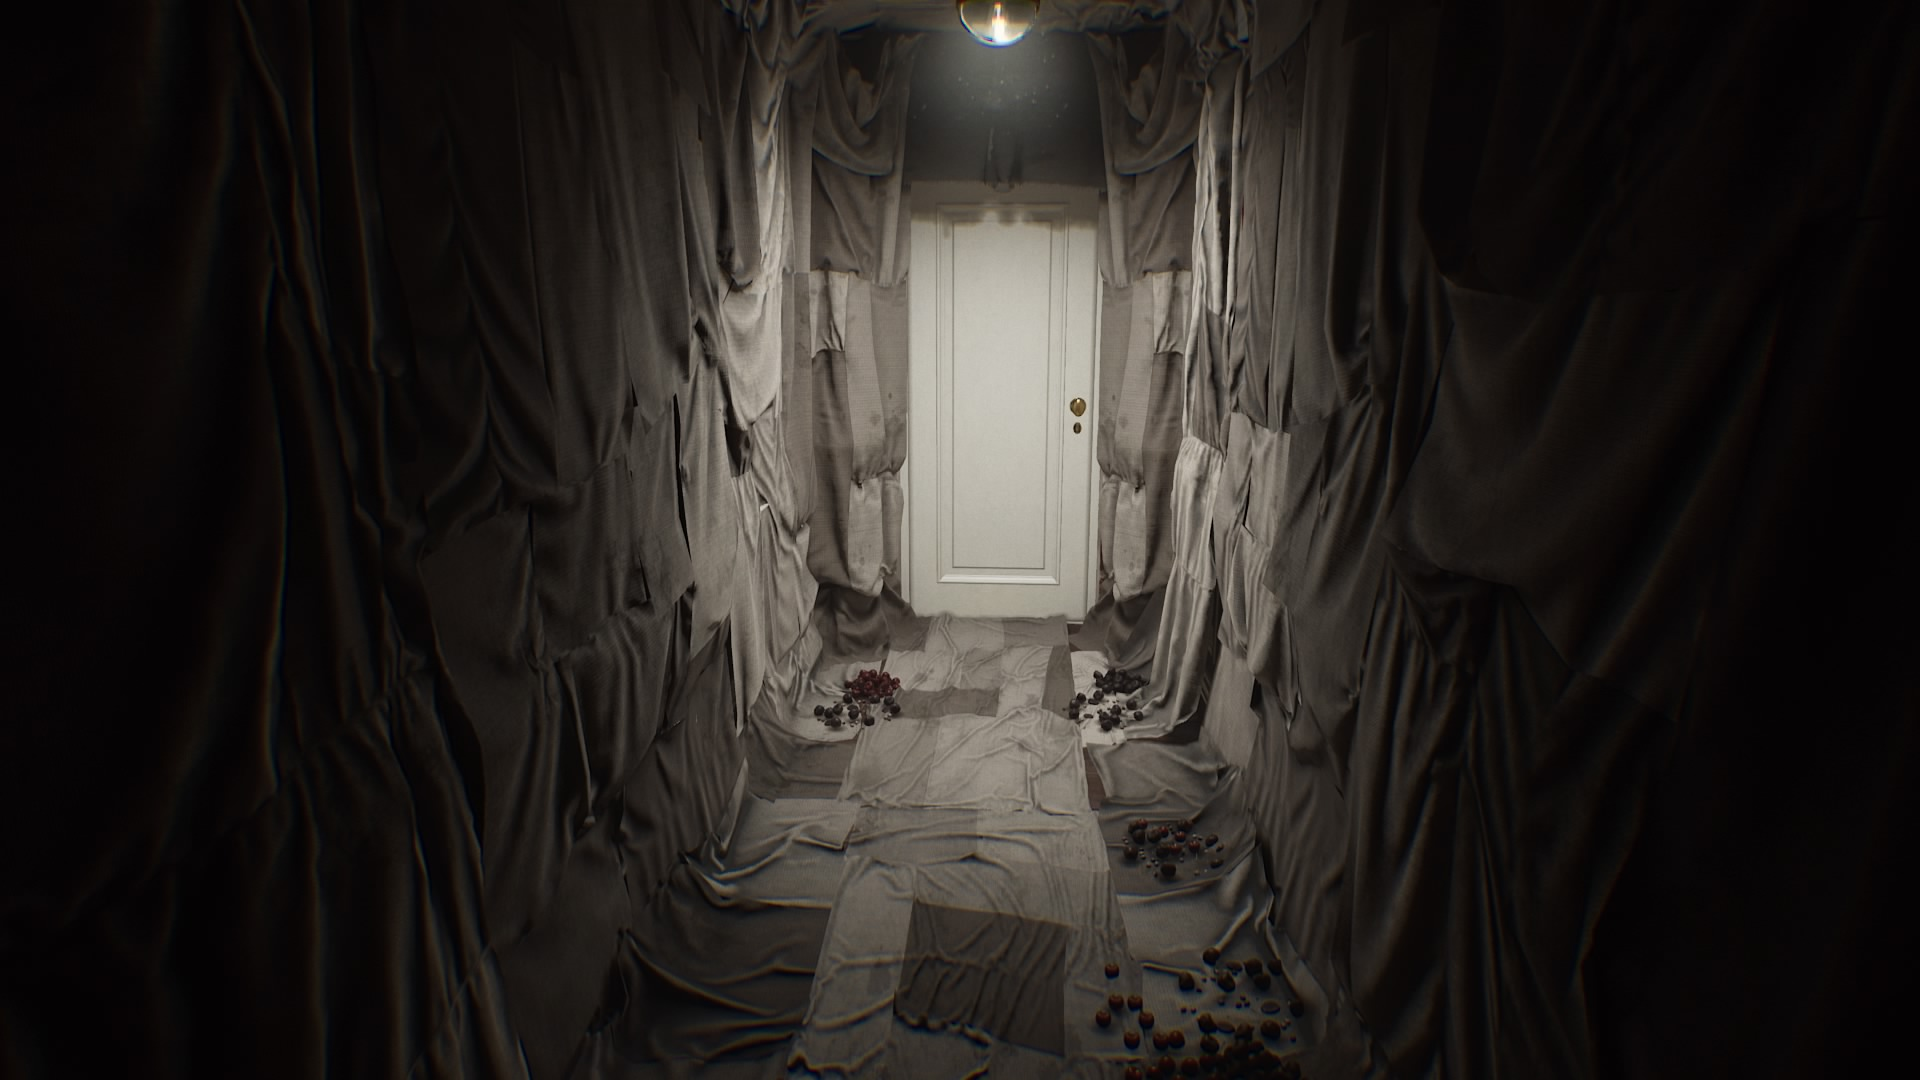 layers_of_fear_2_20190608104416.jpg